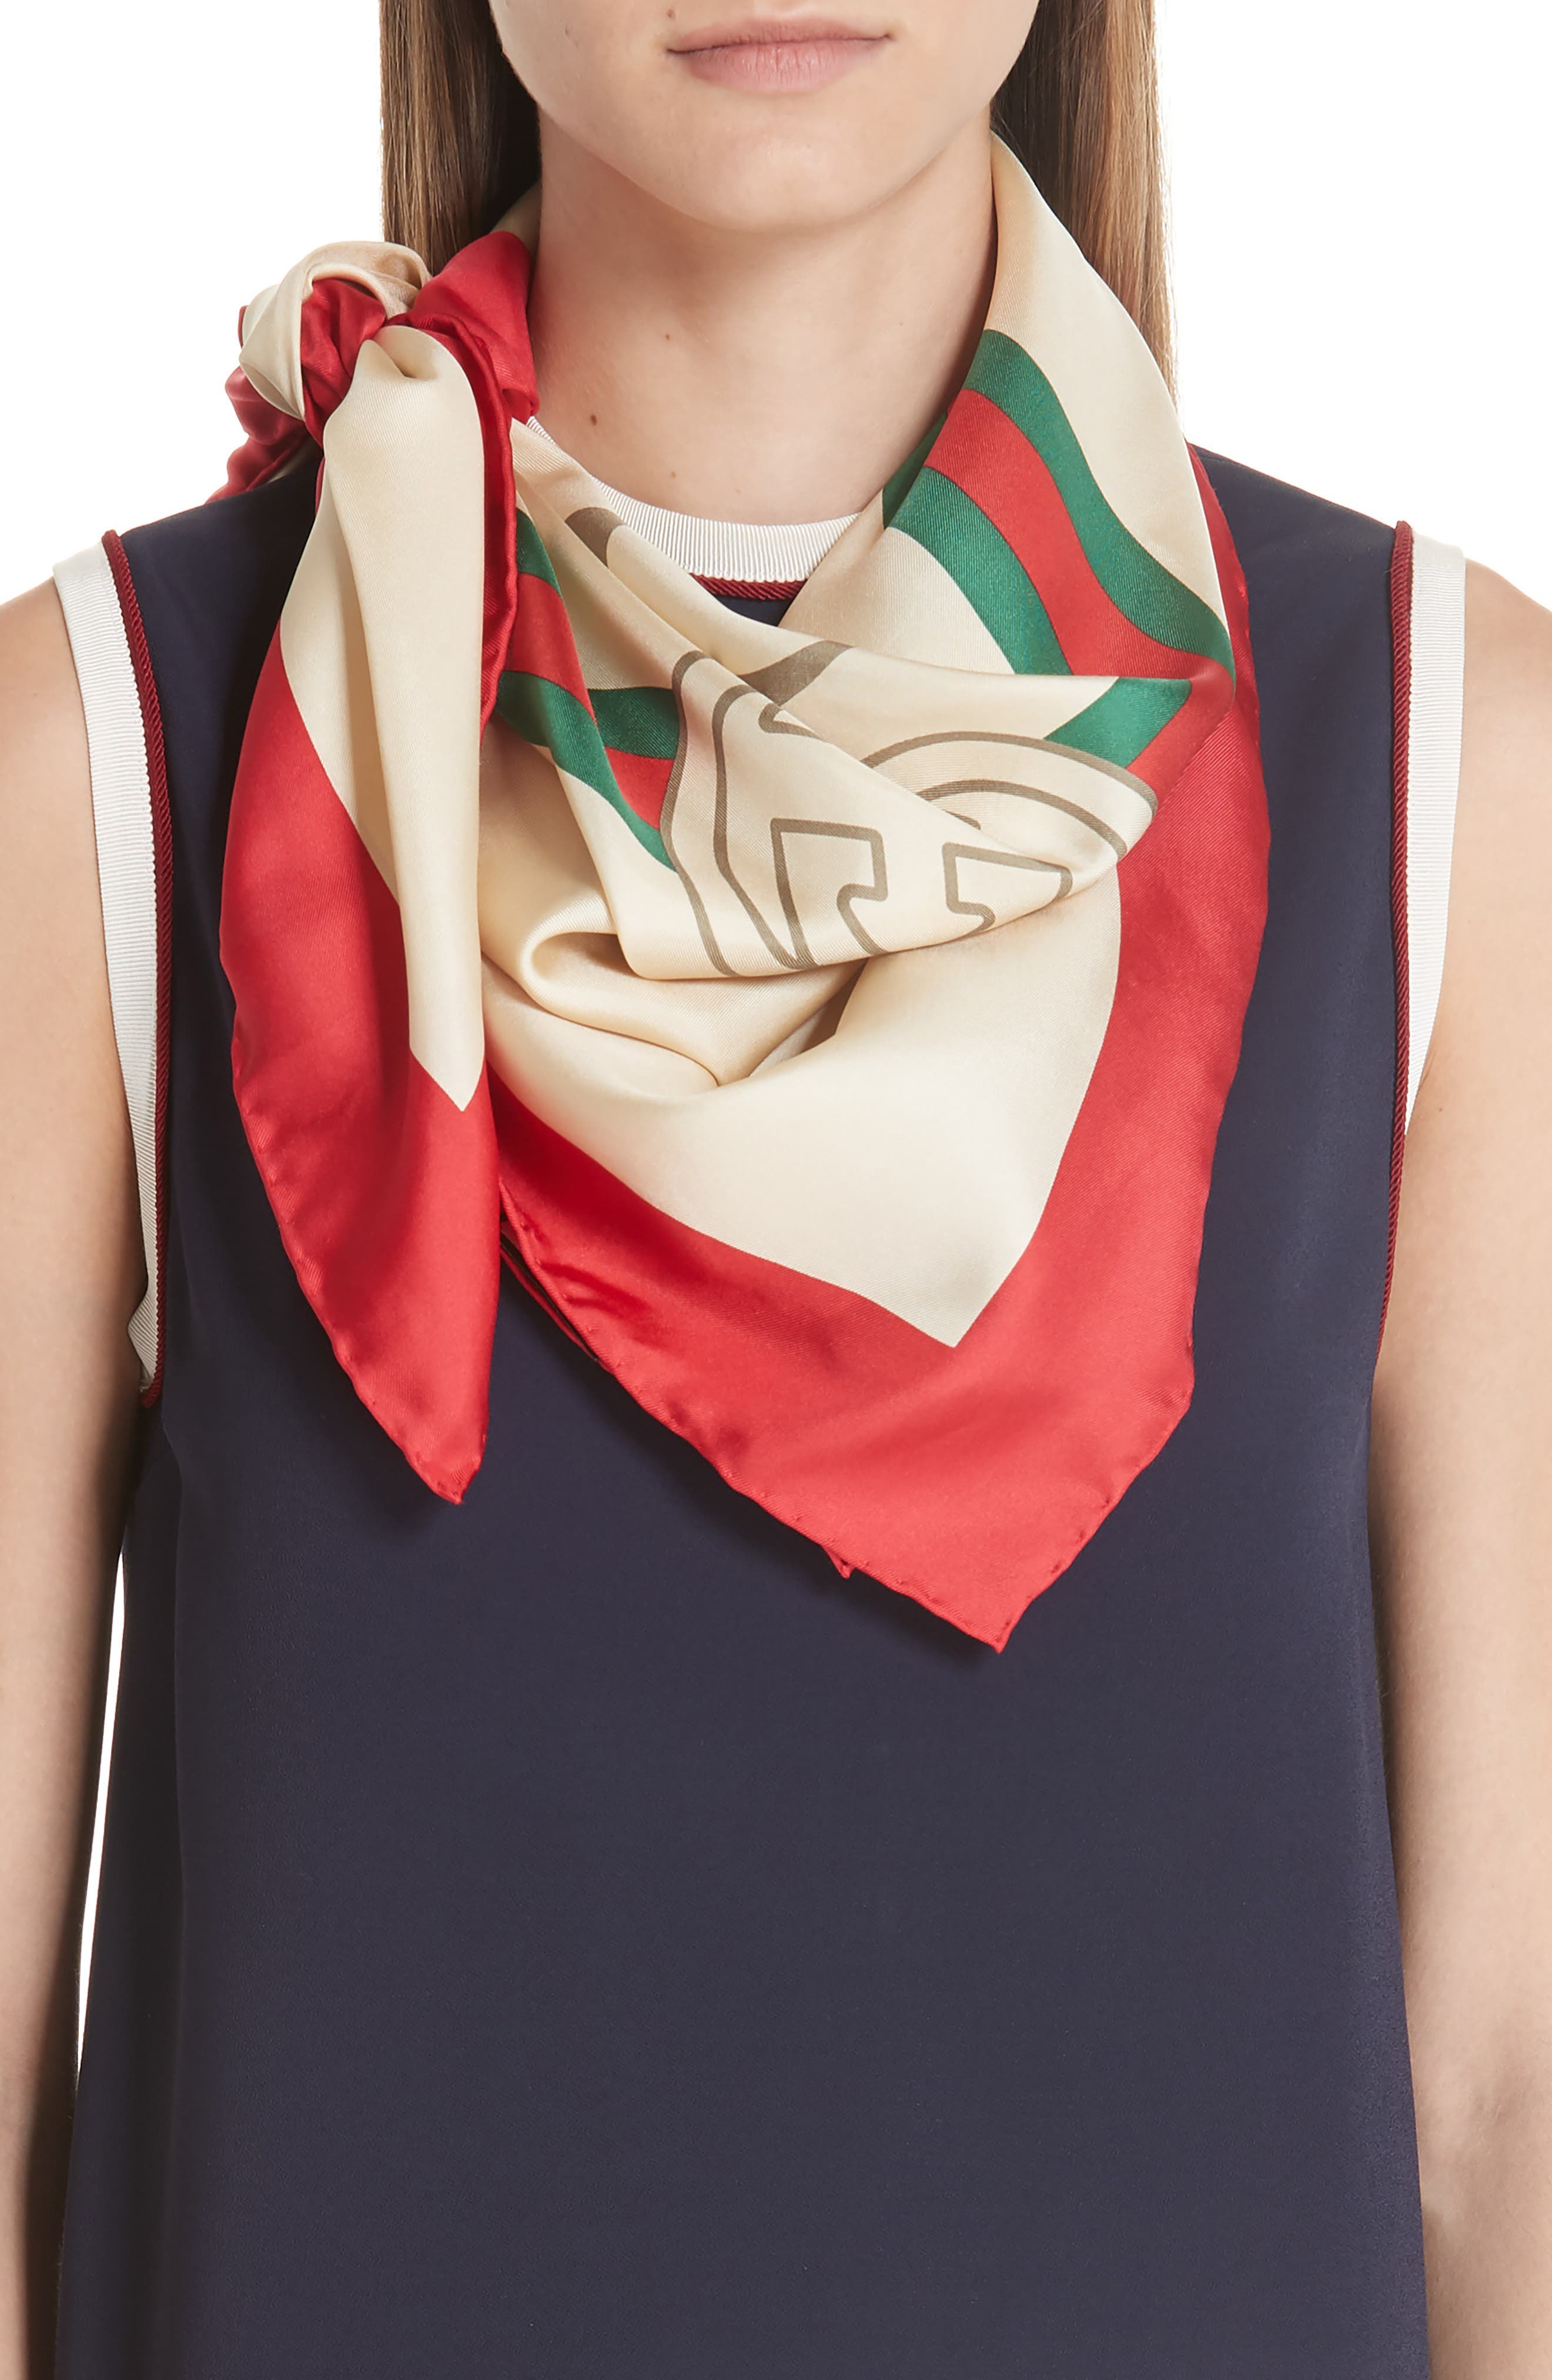 Future Logo Silk Twill Scarf,                             Alternate thumbnail 2, color,                             Ivory/ Red